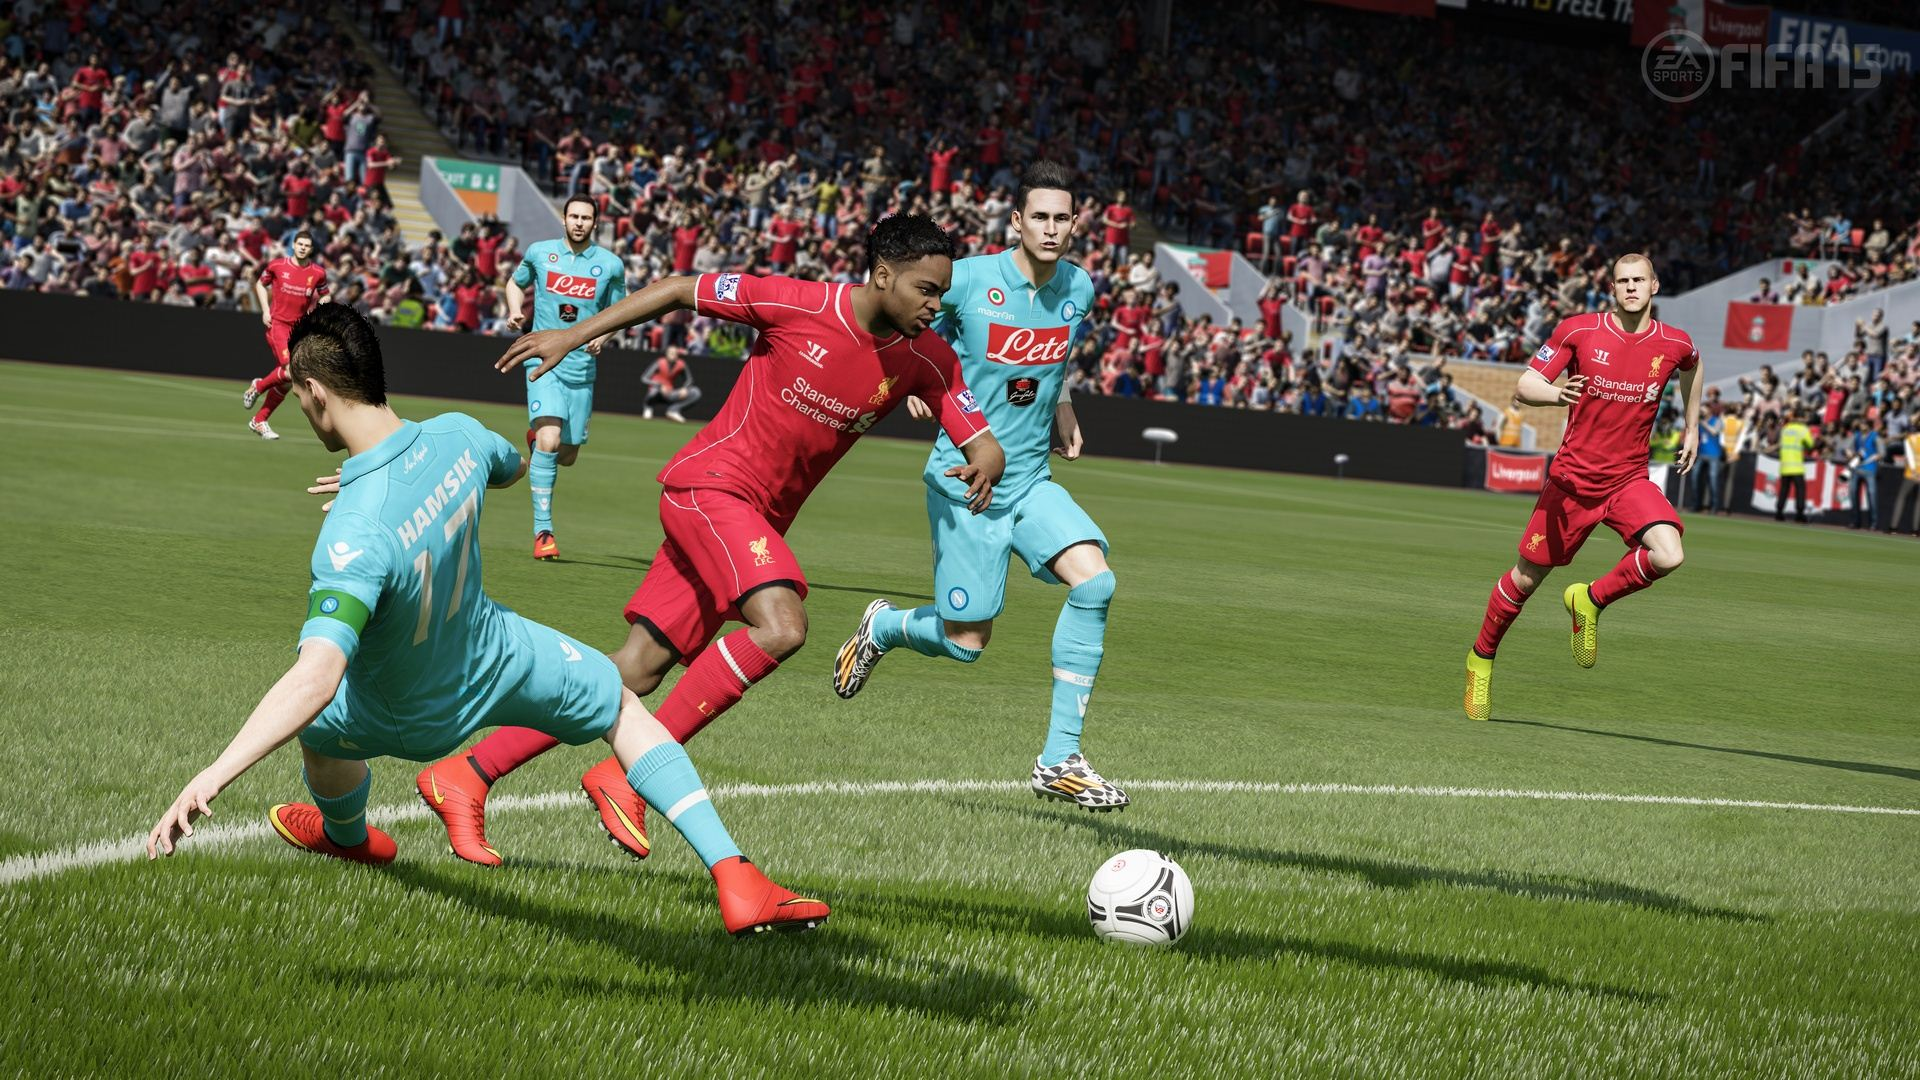 fifa15ps4 Tips about attacking in fifa15